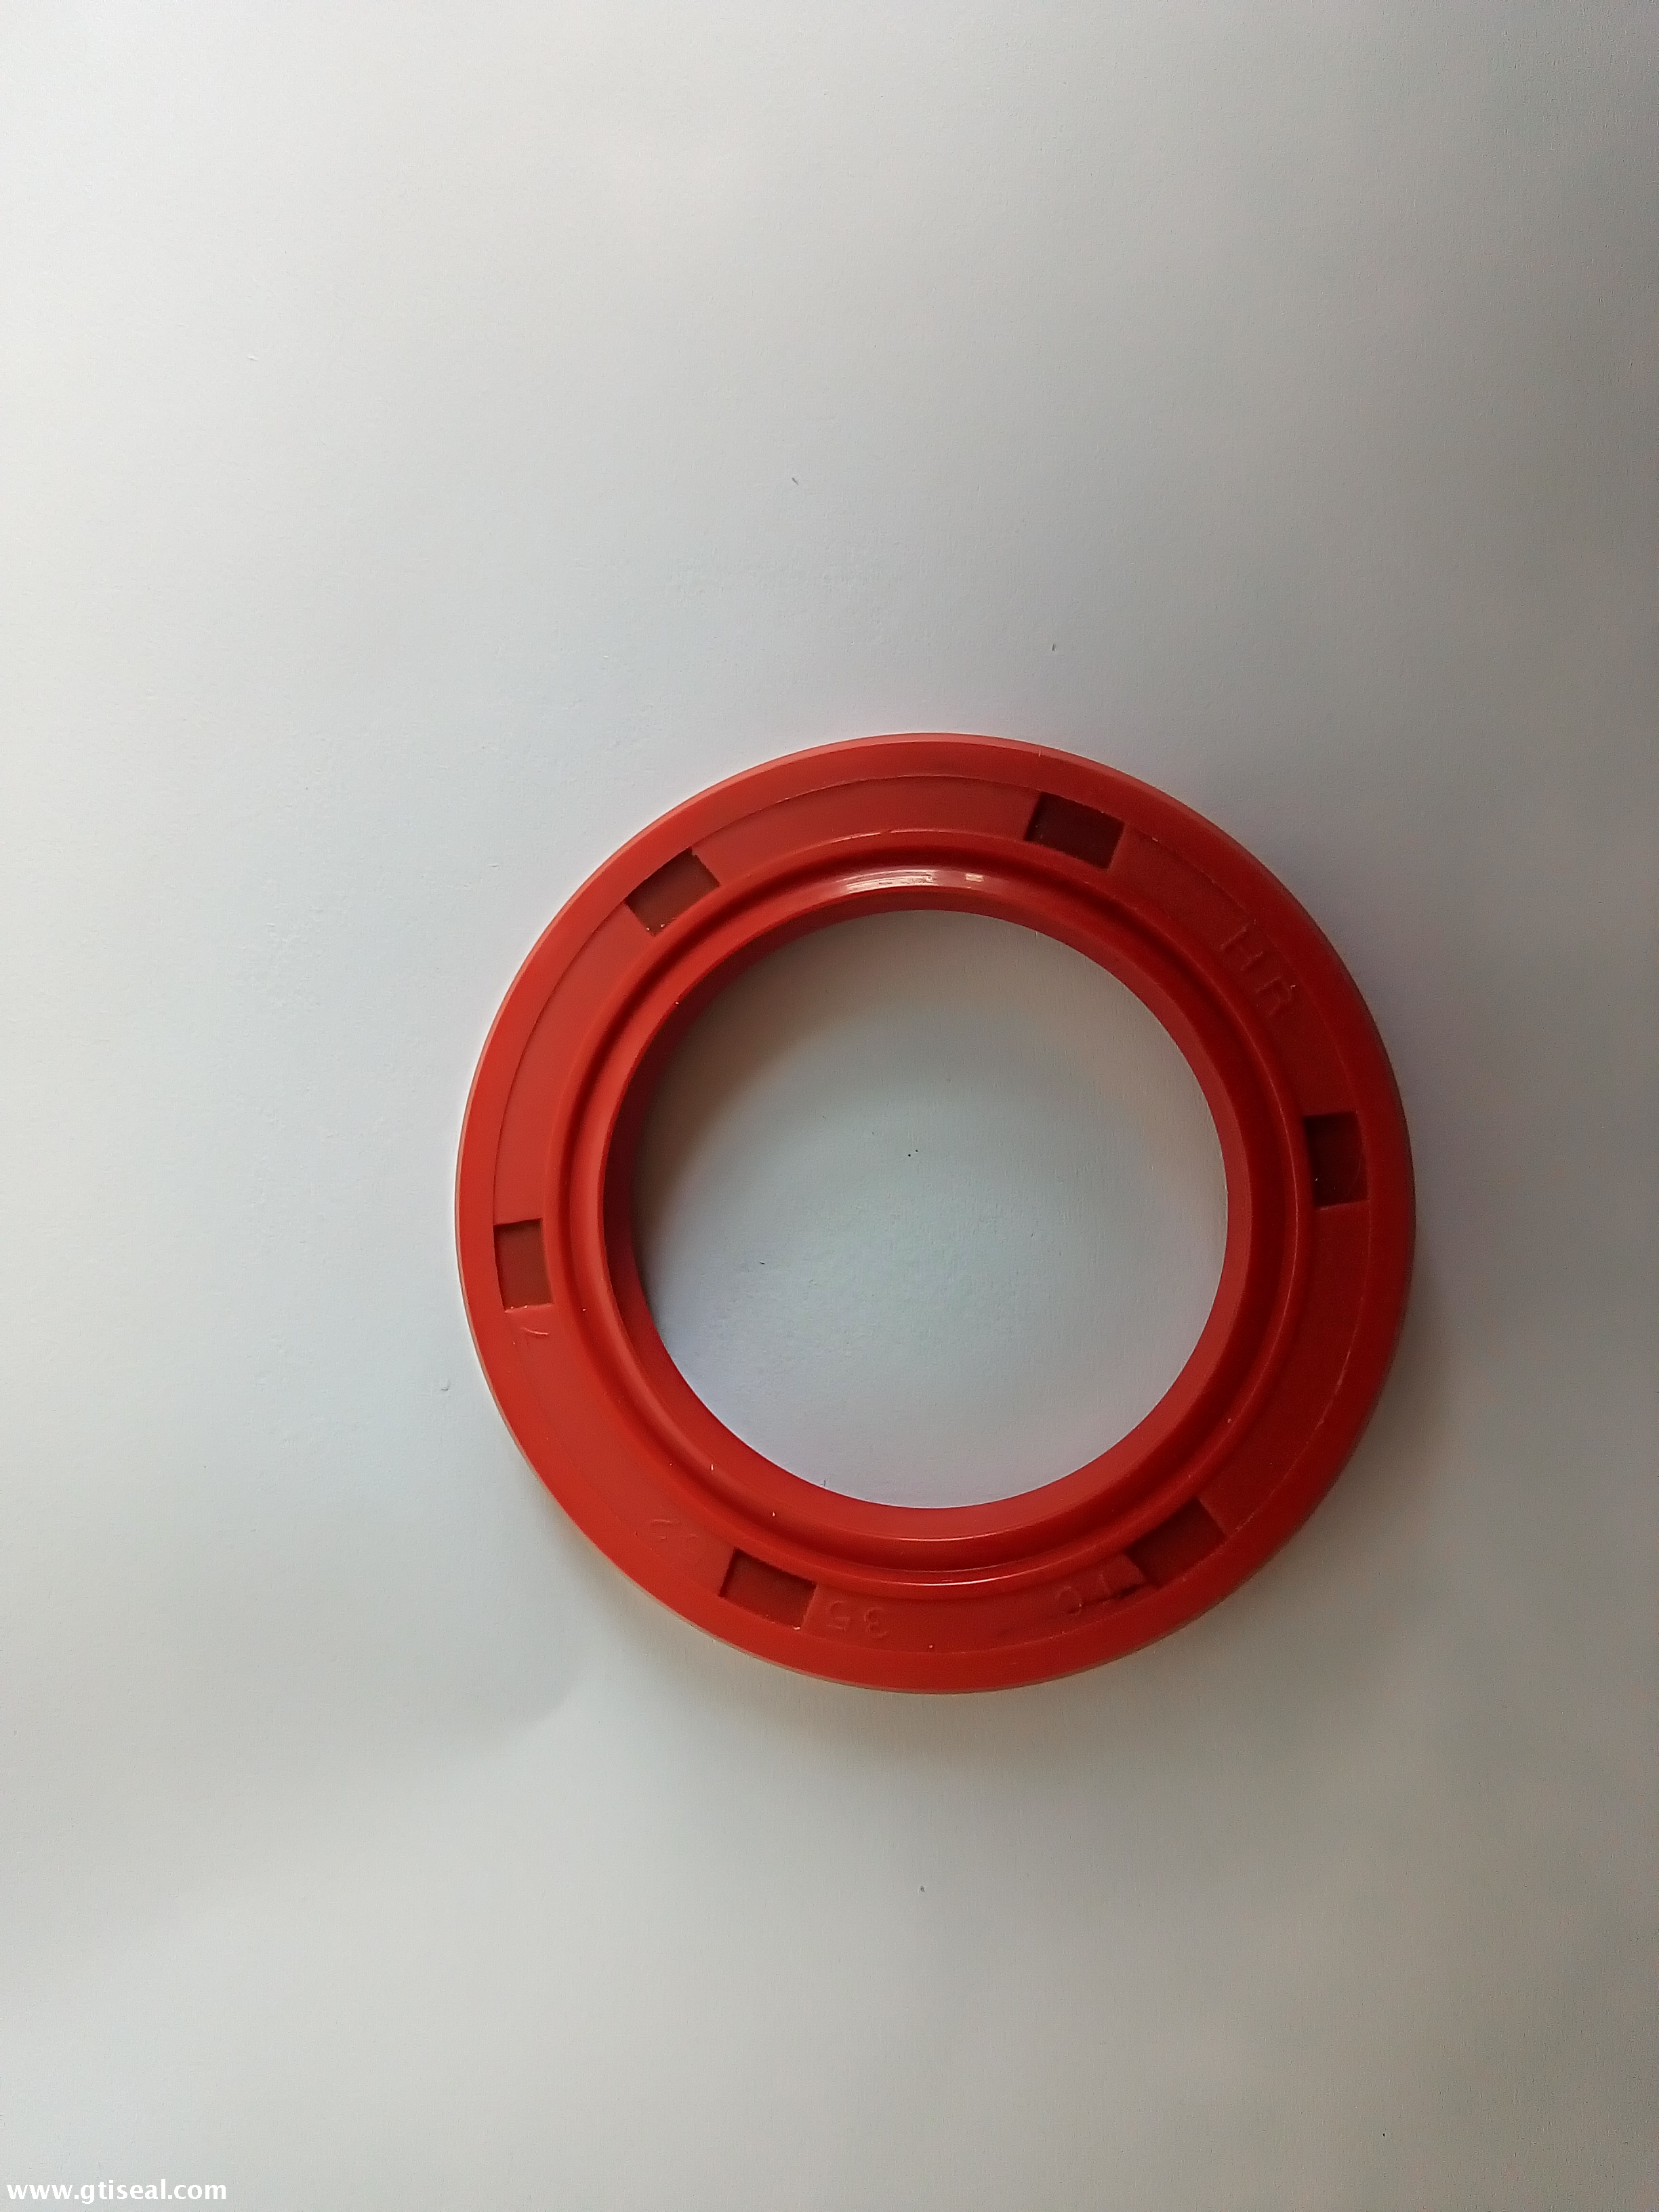 Precision durable oilseal/ rubber oil seal - Buy Product on